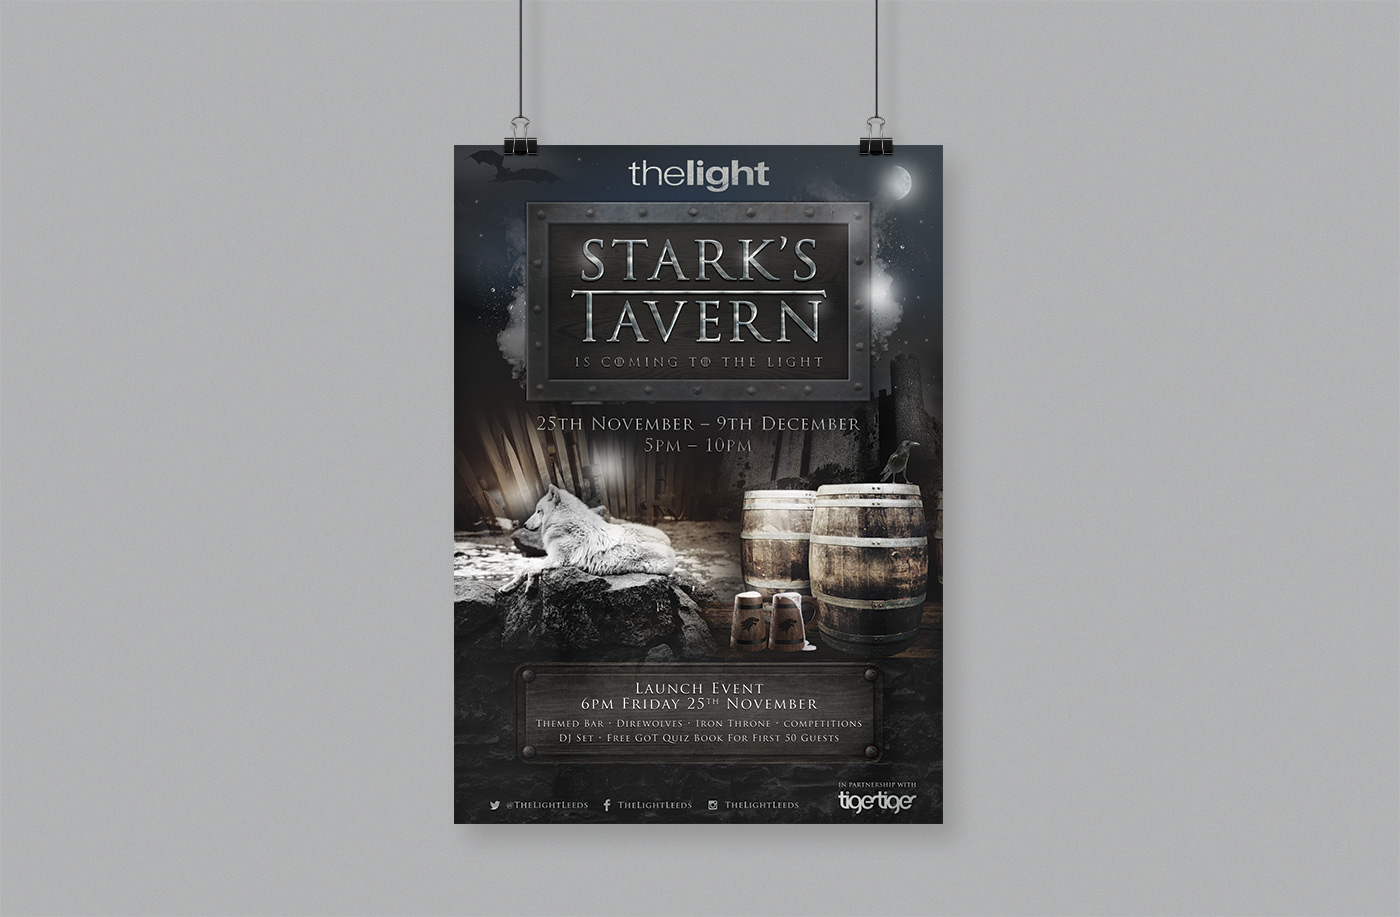 the-light-starks-tavern-poster-feature-image-graphic